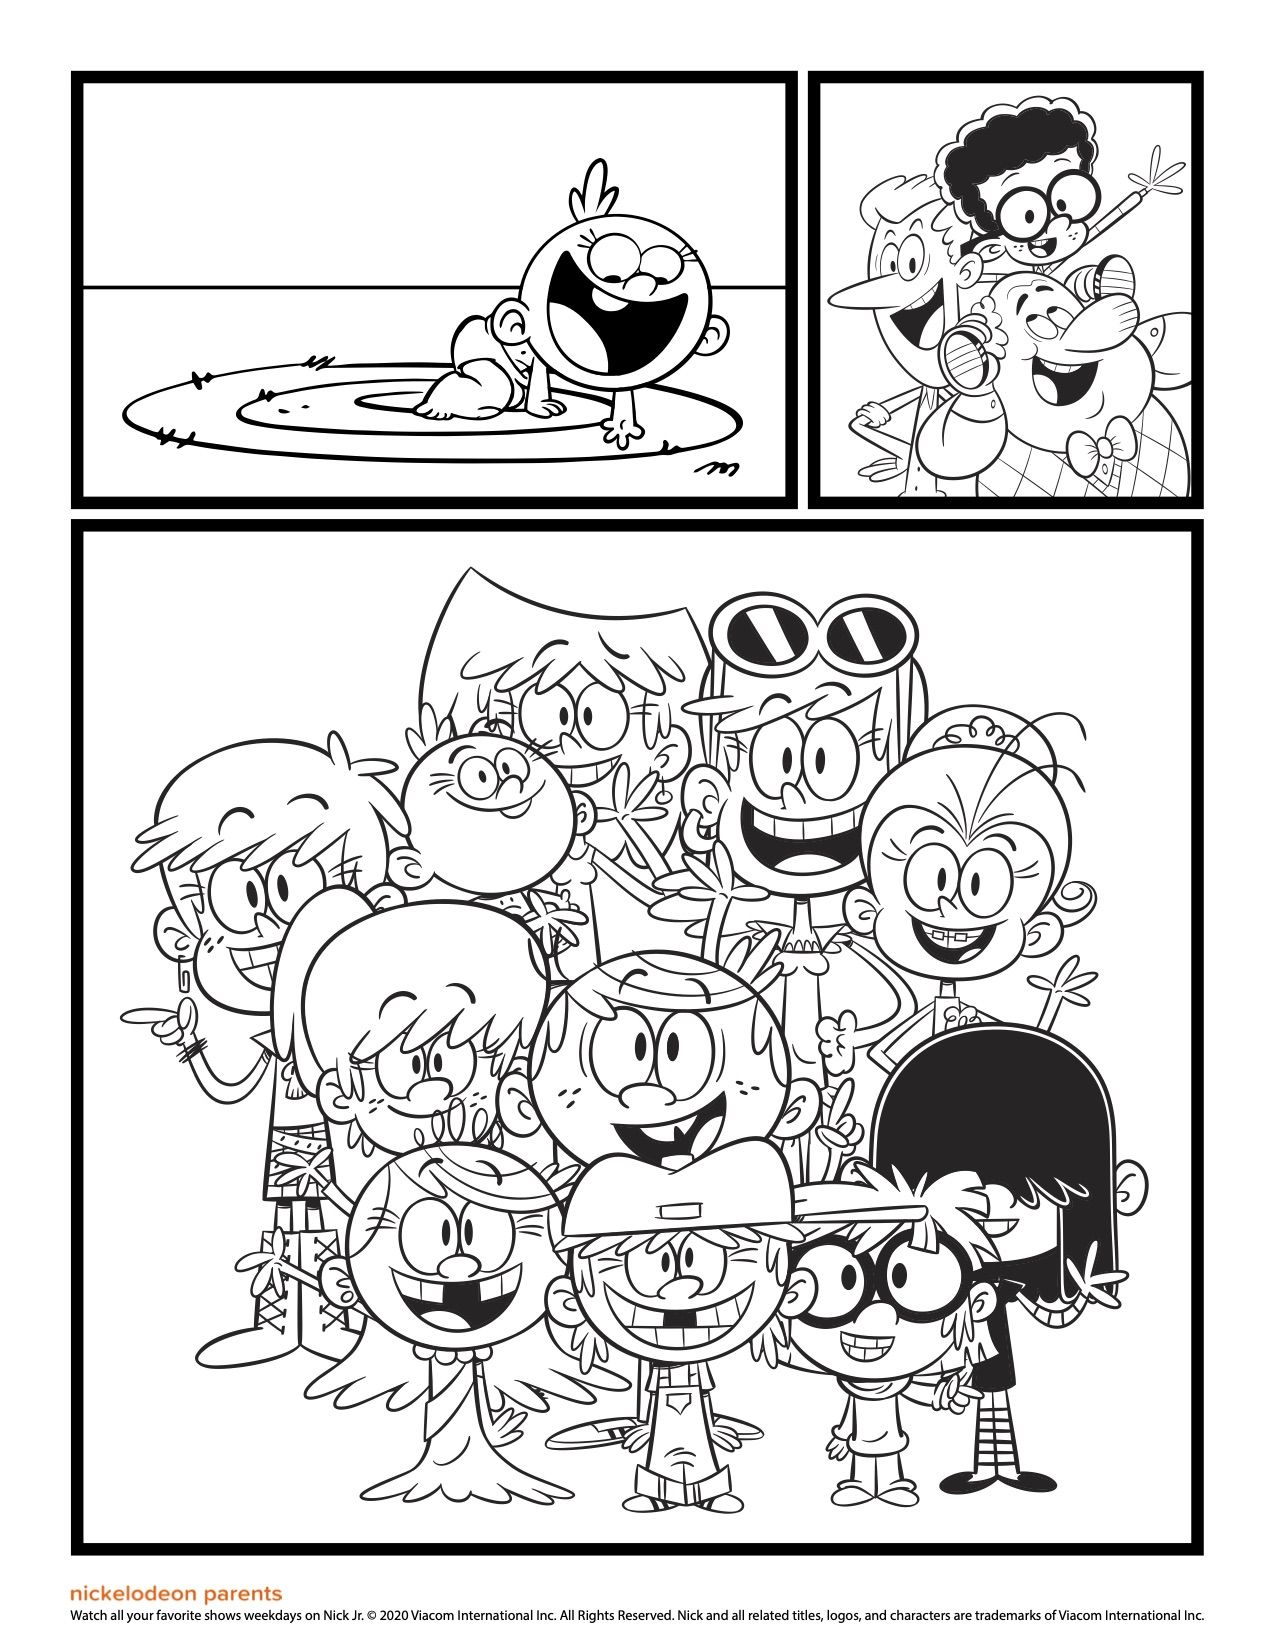 The Loud House Printable Coloring Pages Cute Coloring Pages Coloring Pages Free Printable Coloring Pages